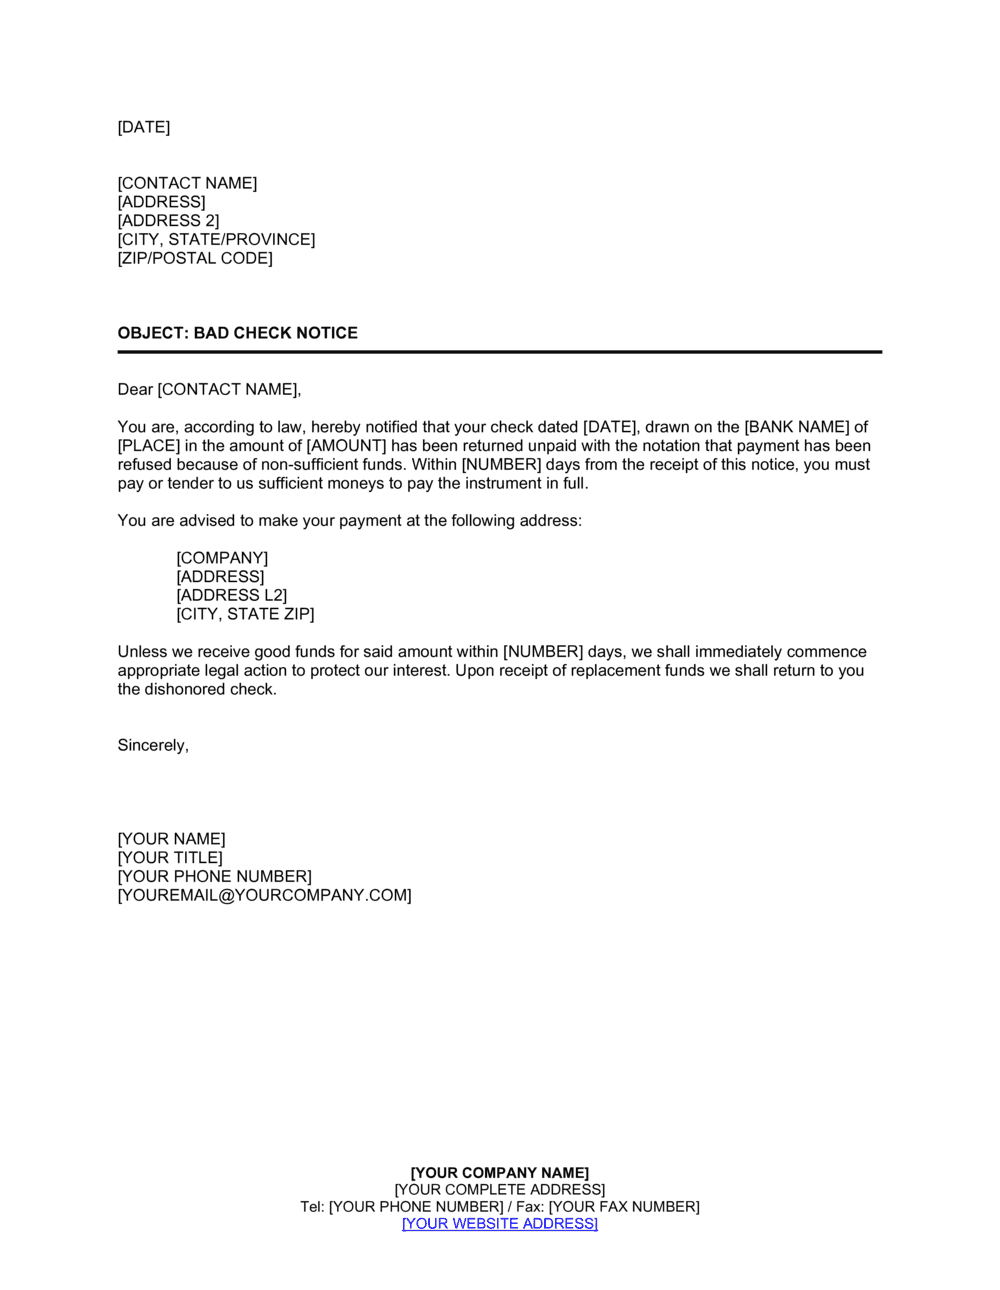 Business-in-a-Box's Notice of Check NSF Template